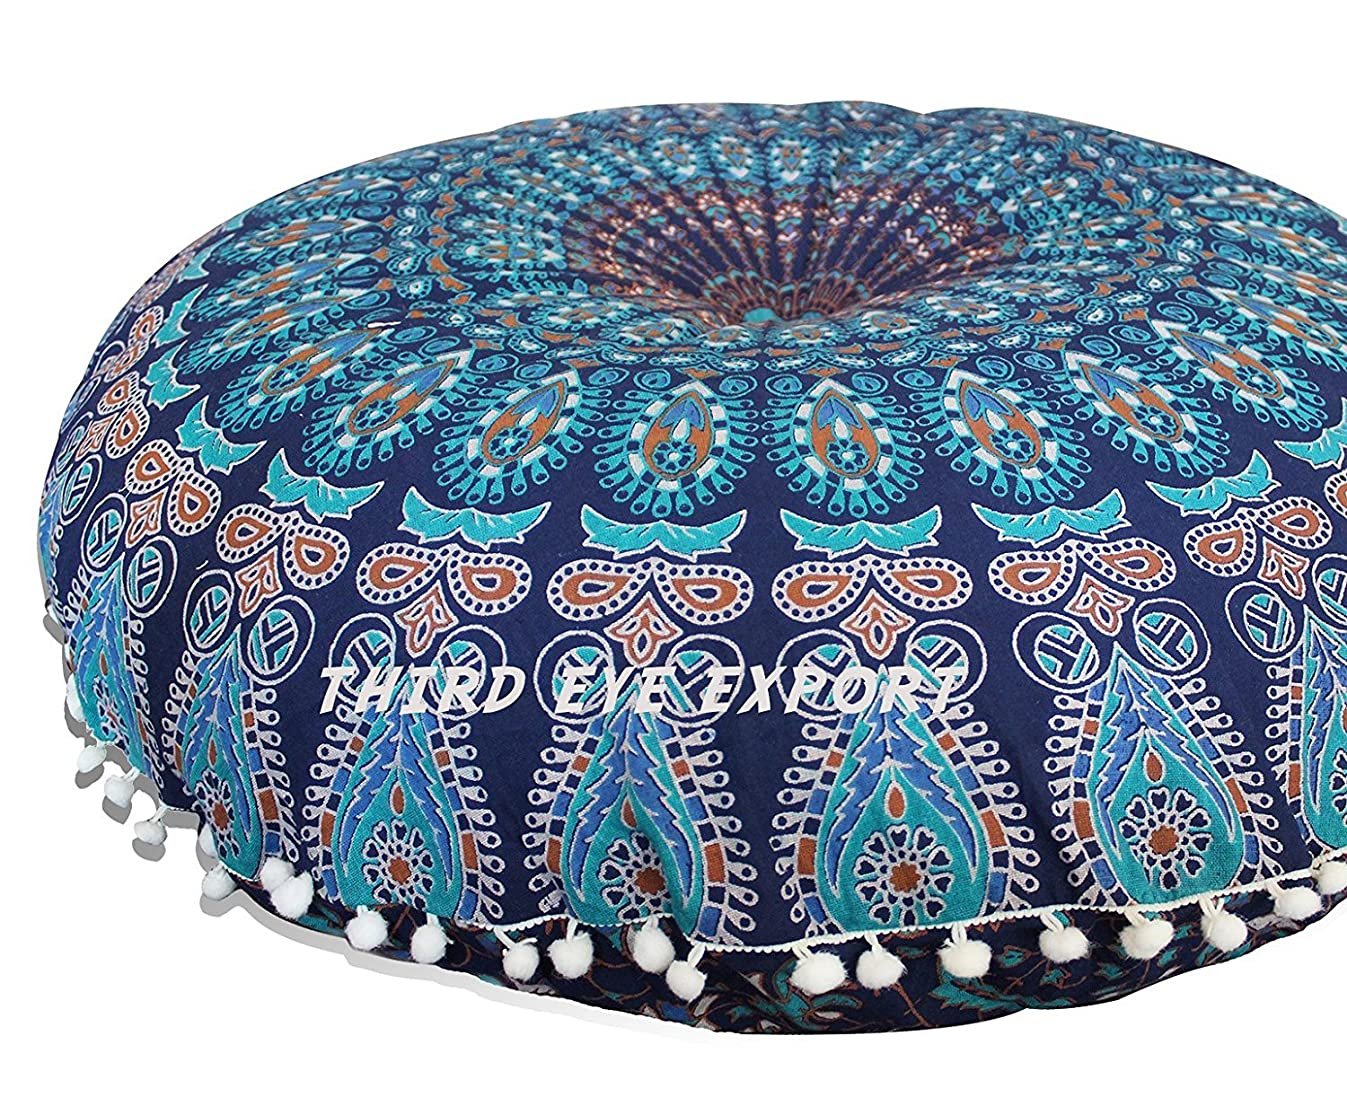 Third Eye Export - 32 in Mandala Barmeri Large Round Floor Pillow Cover Cushion Meditation Seating Ottoman Throw Cover Hippie Decorative Zipped Bohemian Pouf (Blue Cover Only, 32 Inches)